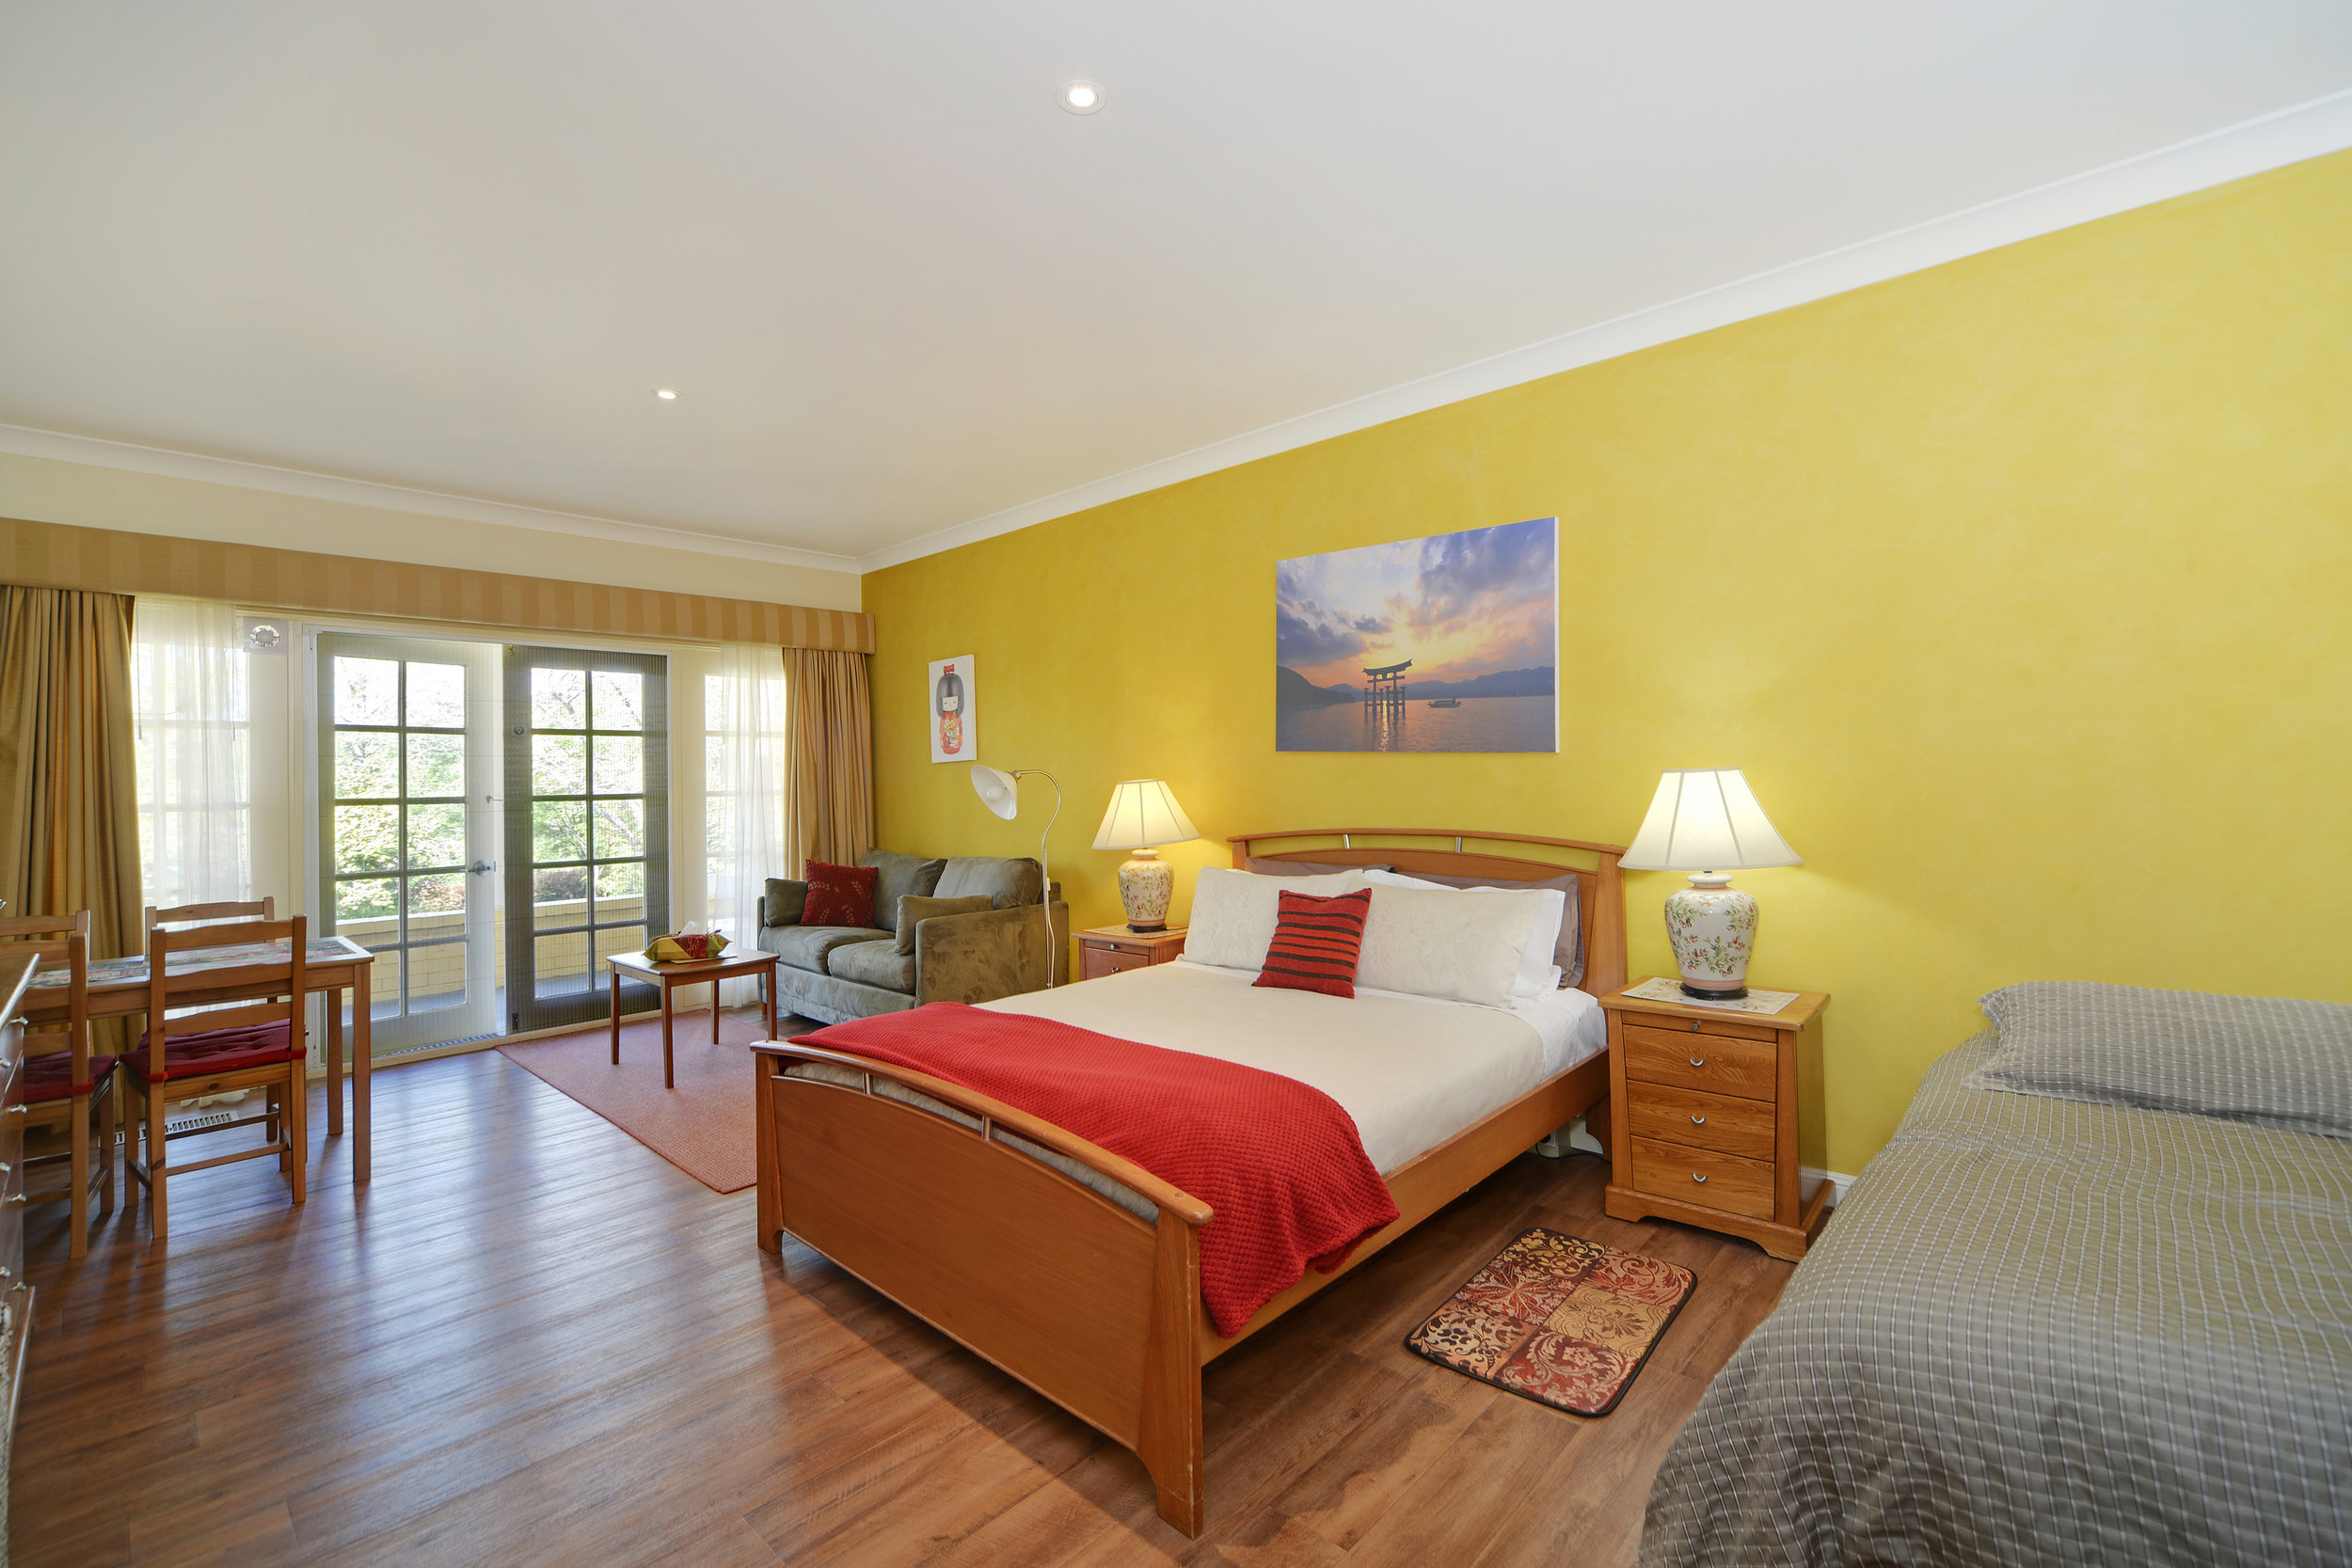 1 Queen bed | 1 king single bed | 1 sofa bed | max 4 people